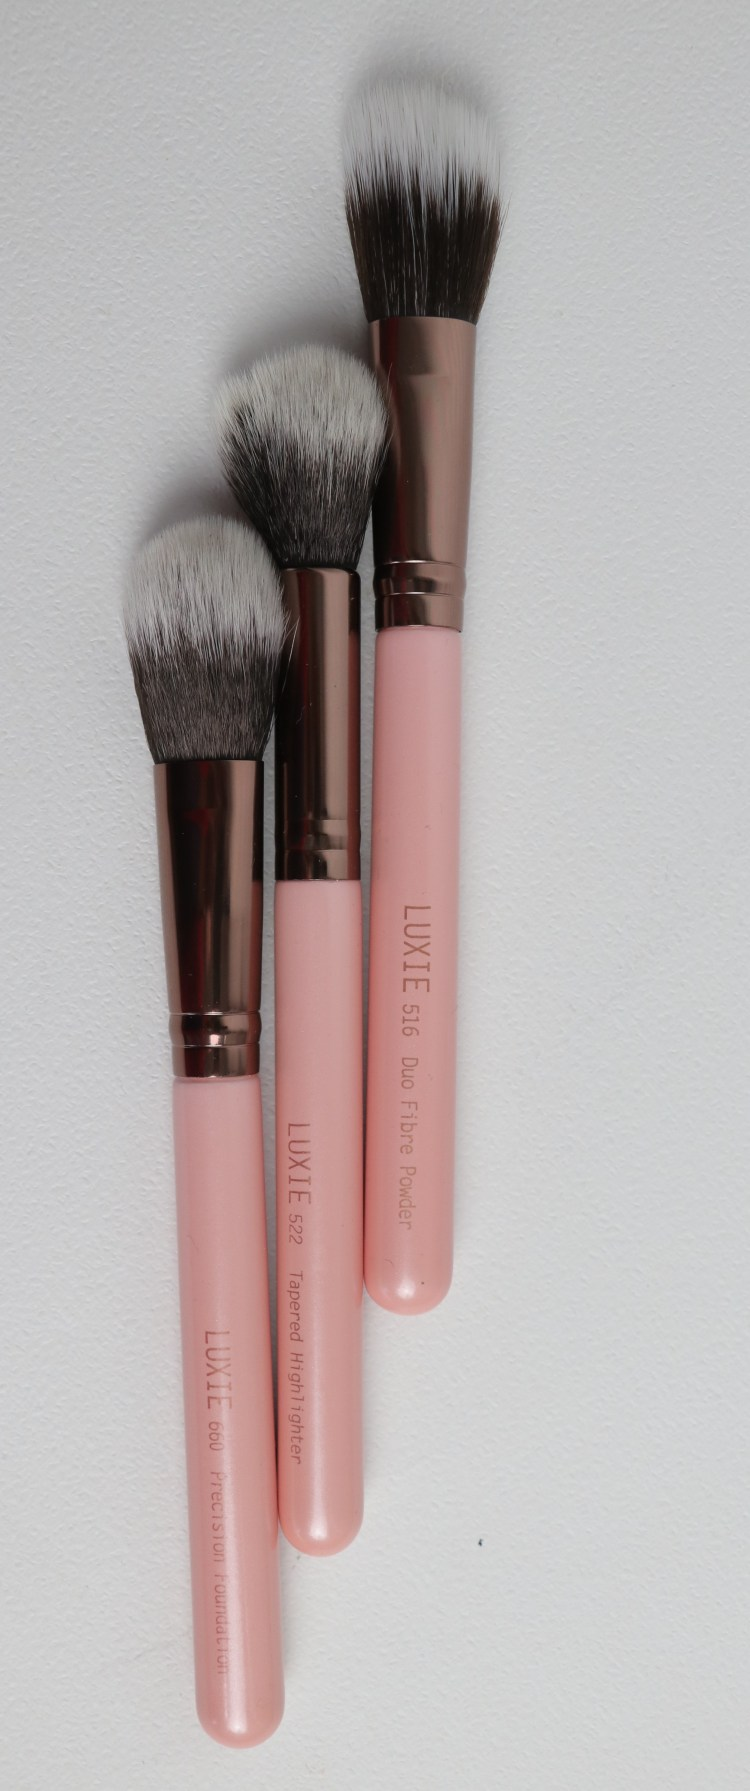 Boxycharm June 2018 - Luxie 3 Piece Flawless Complexion Brushes